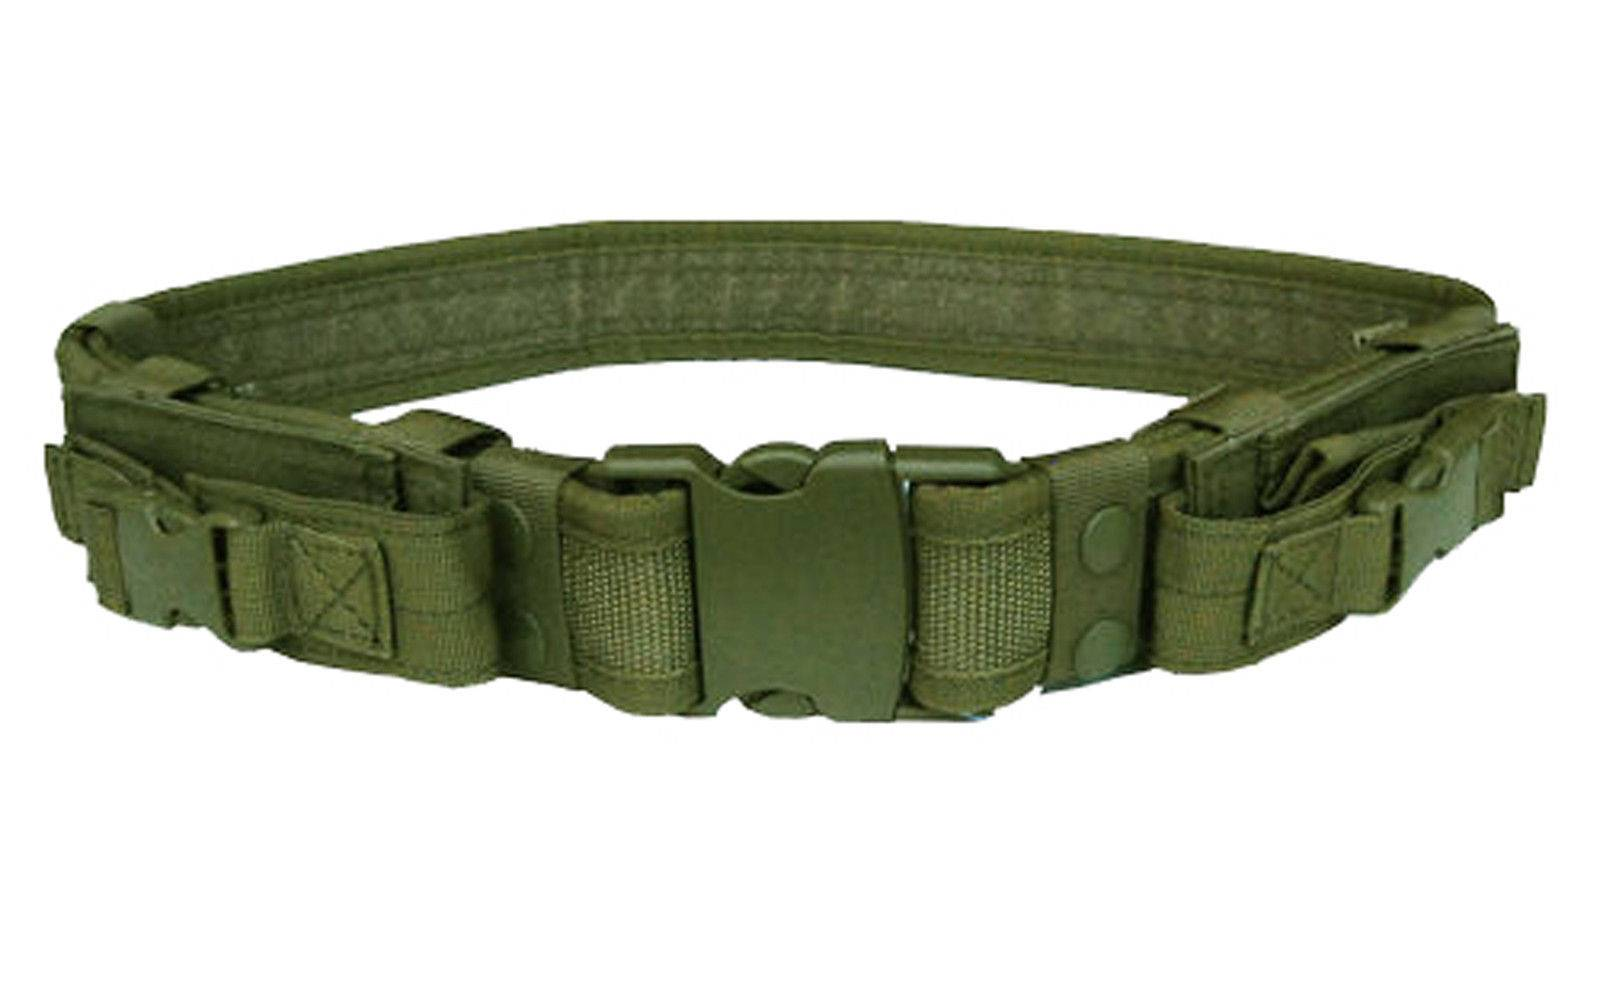 Tactical belt for your gear